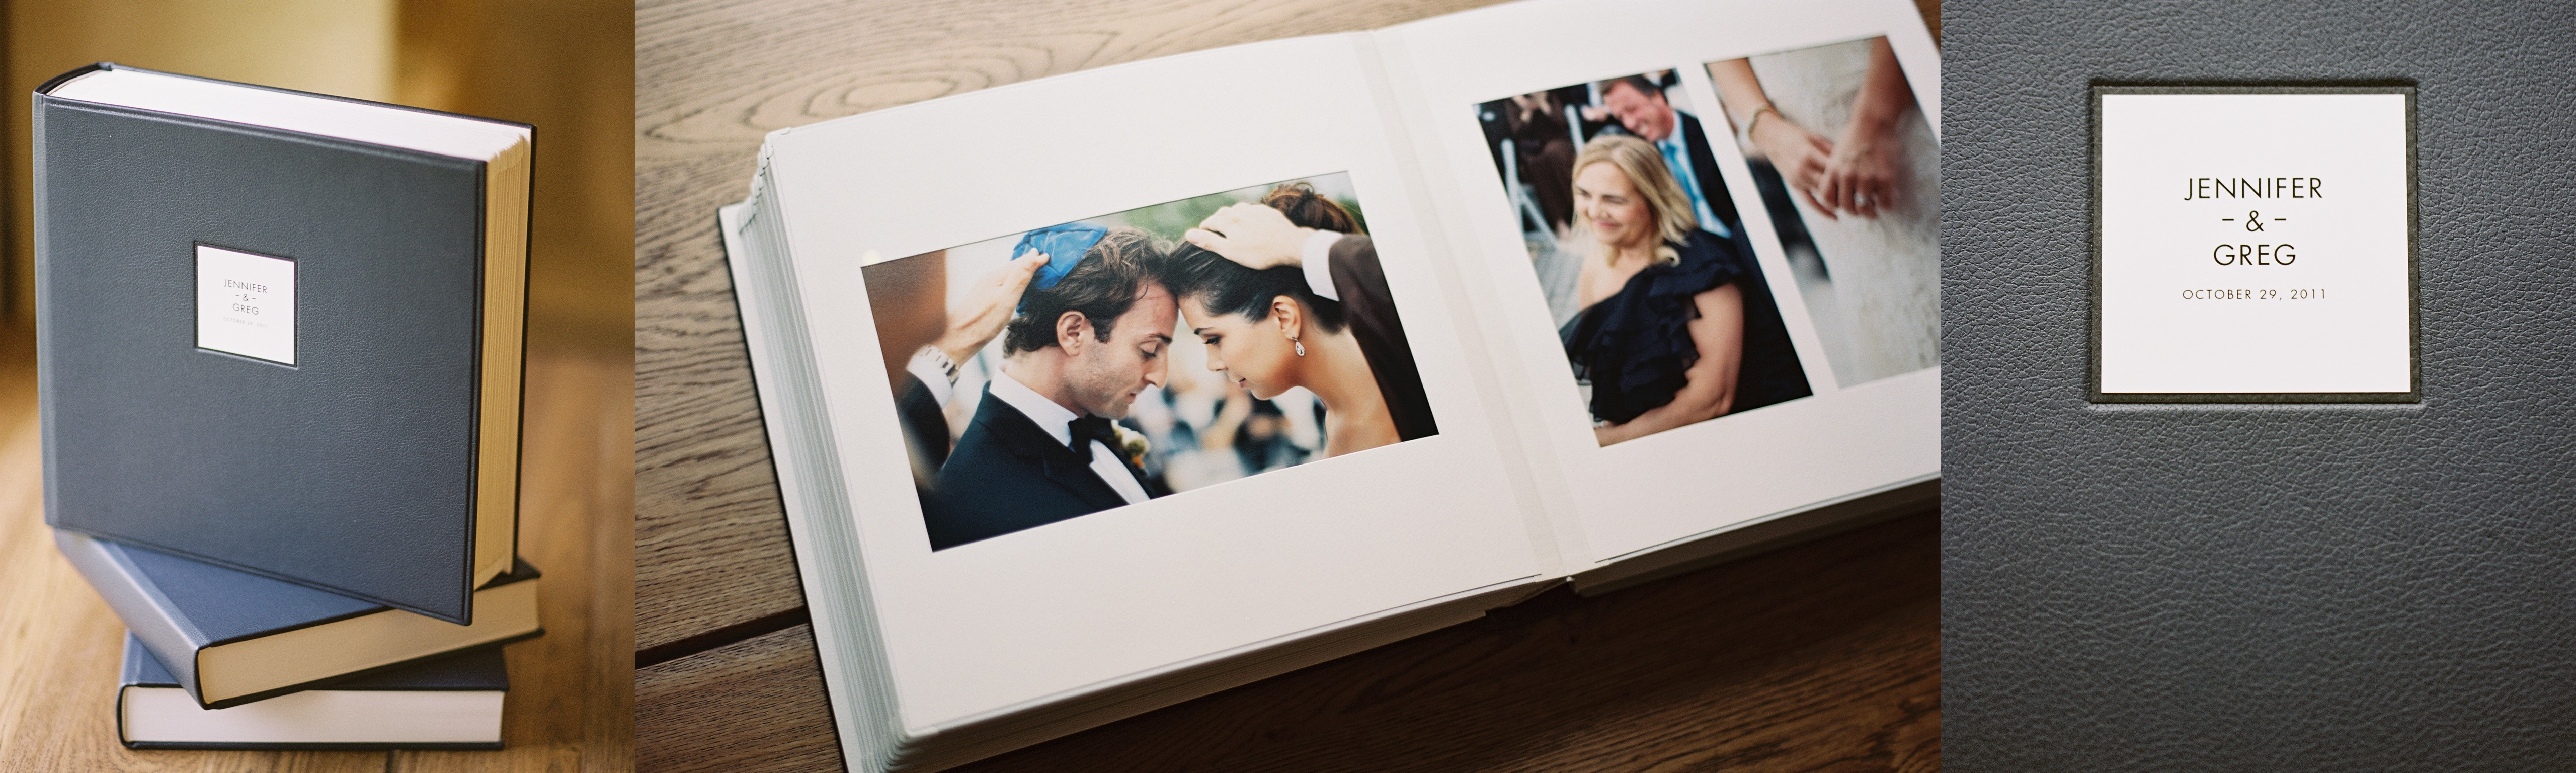 Haring photography - High Quality Wedding Albums